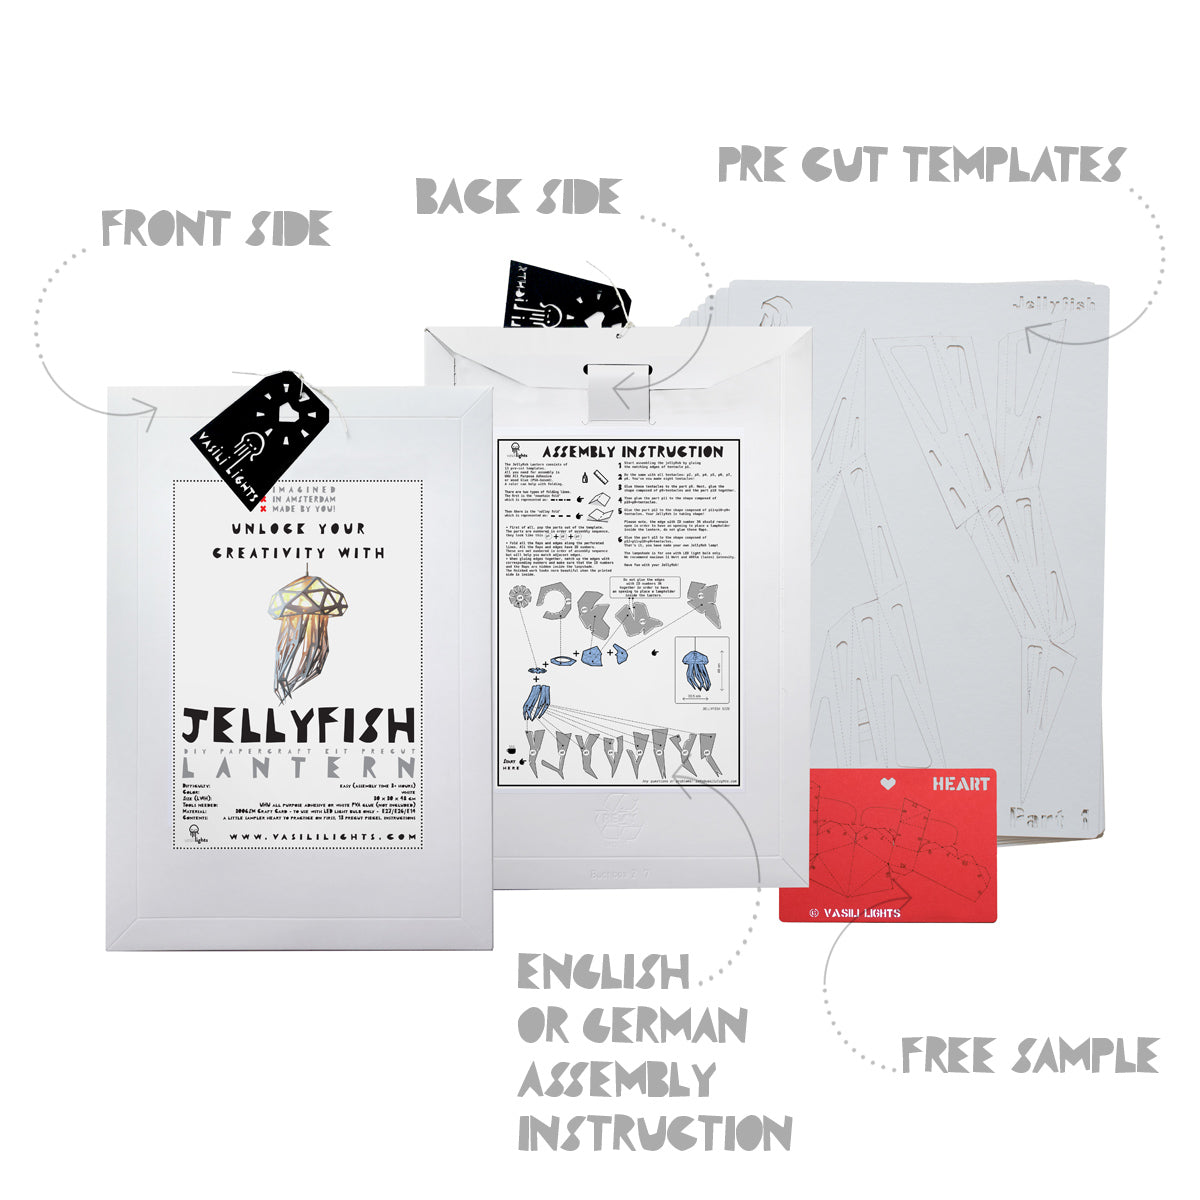 The envelope, pre-cut templates, and assembly instruction for DIY papercraft Jellyfish lampshade.